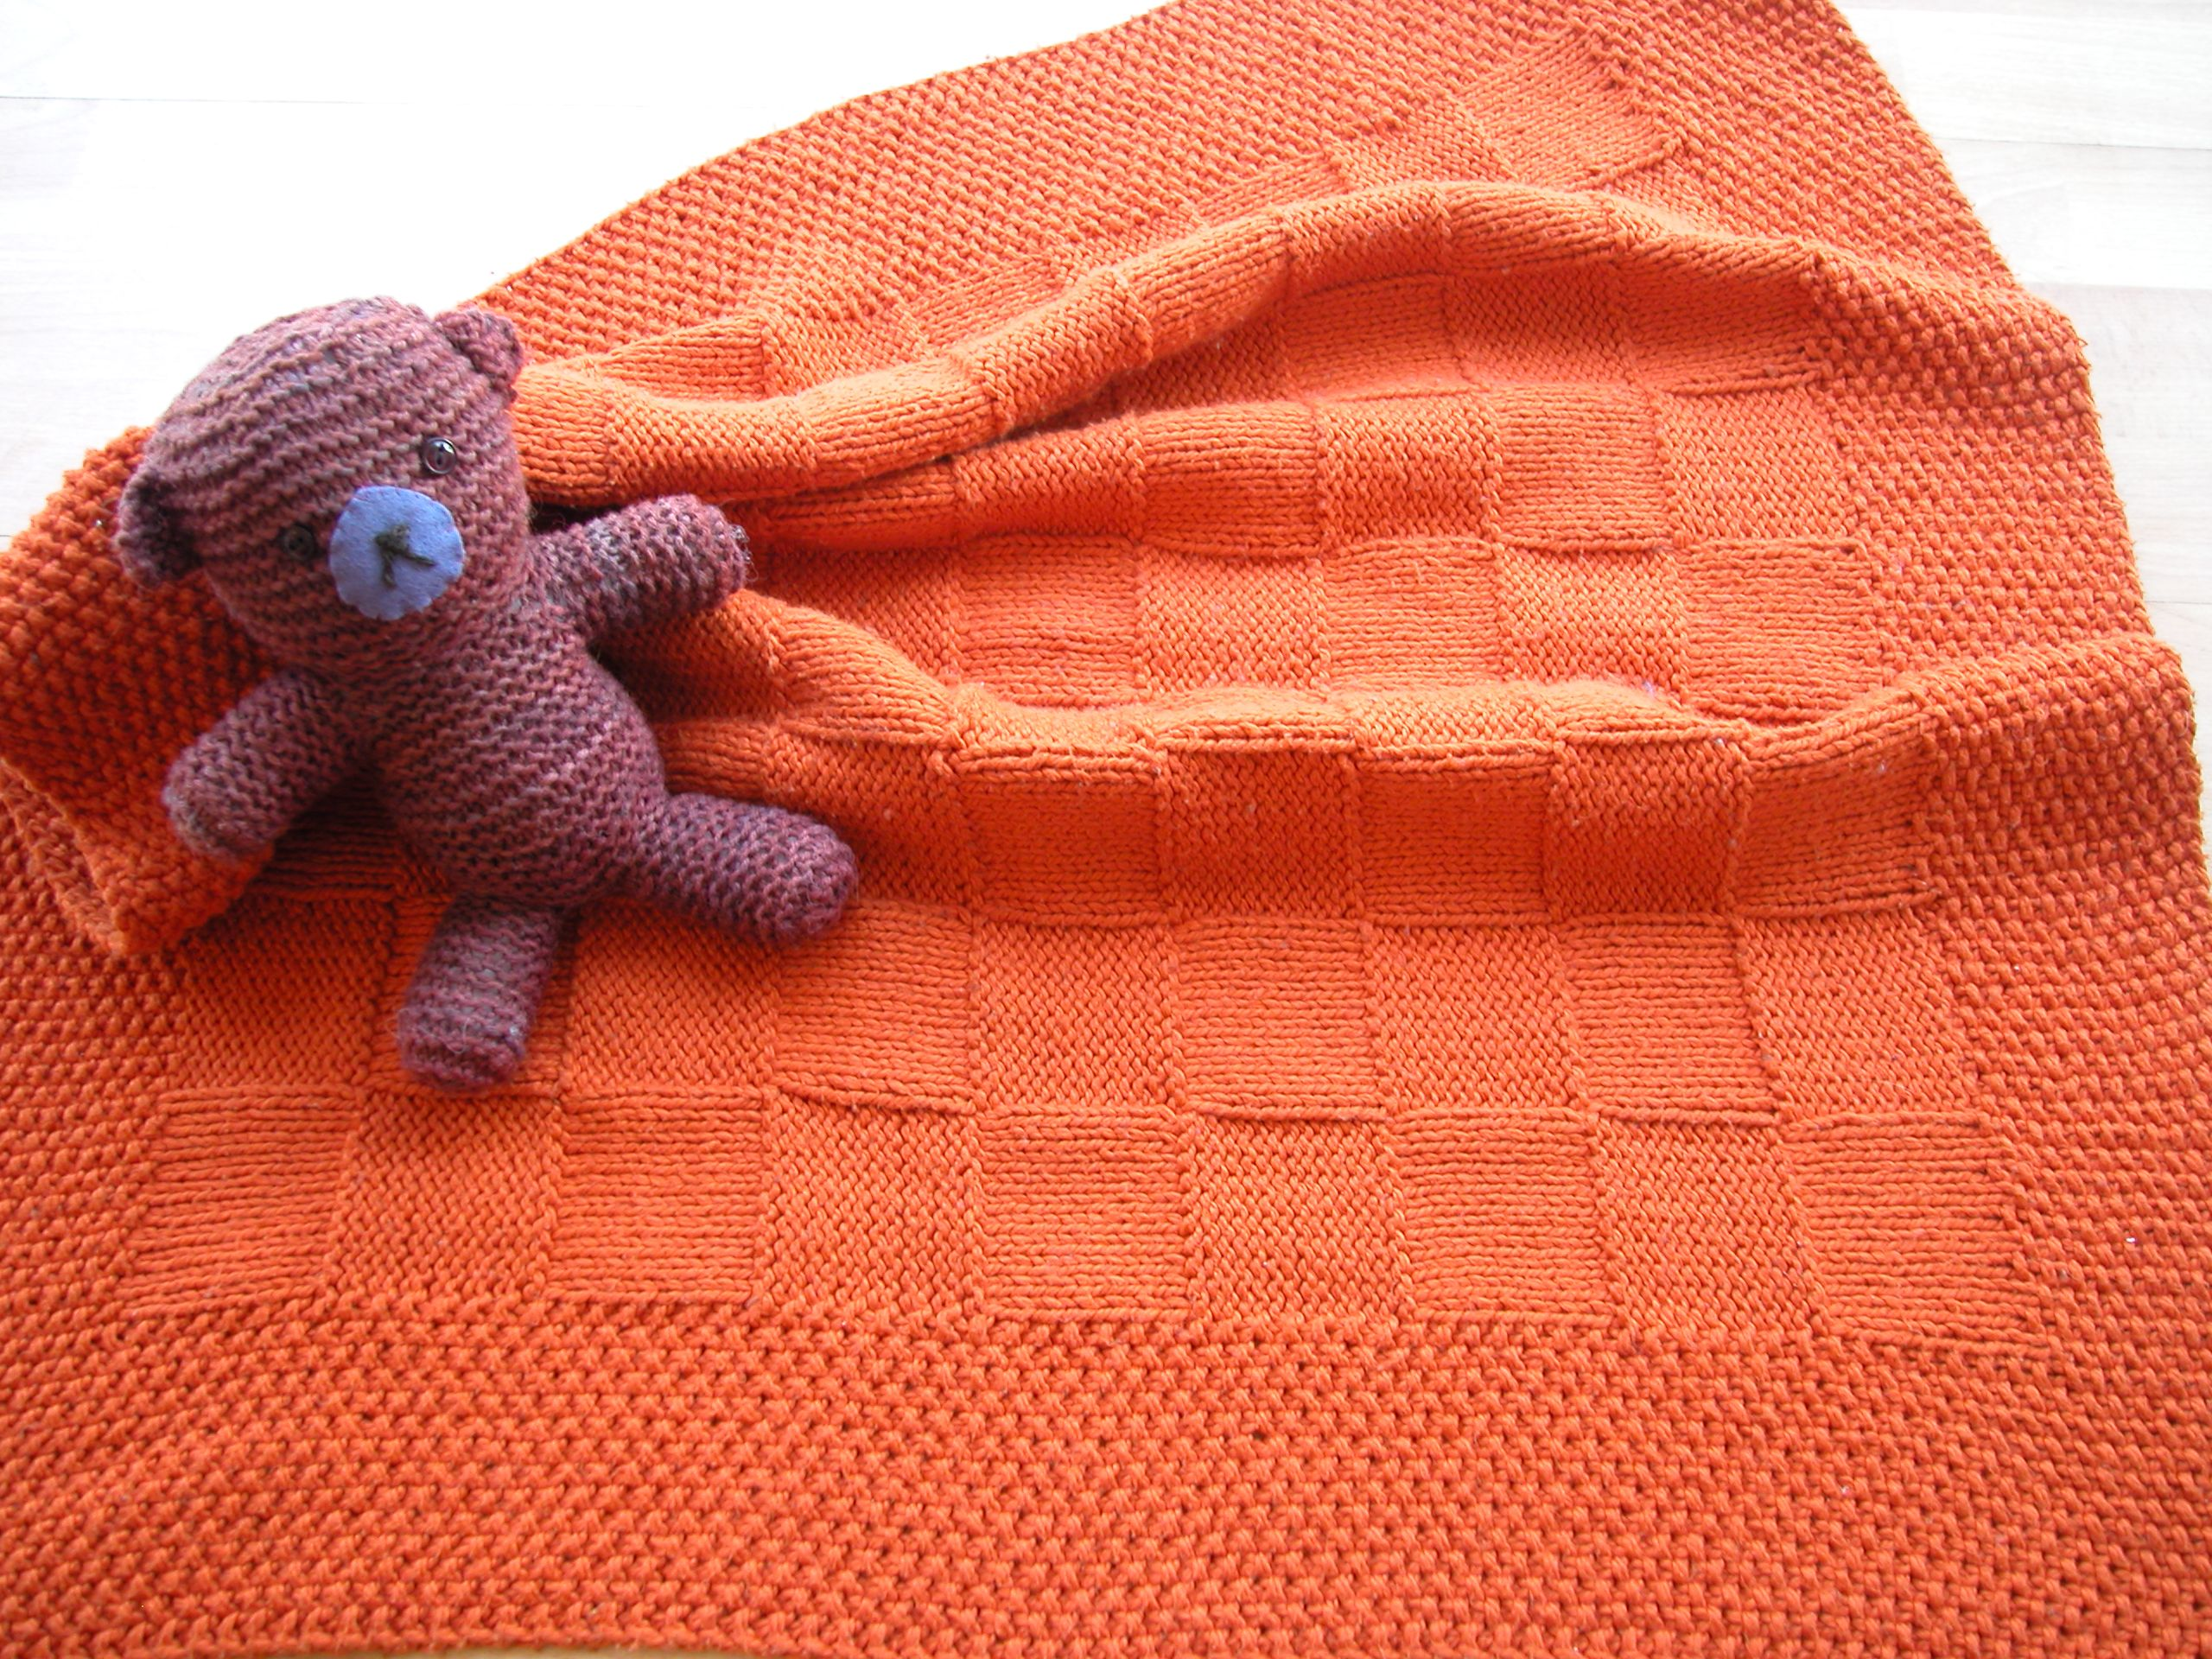 Knitting Patterns Baby Blankets For Beginners : August 2011 the knit cafe